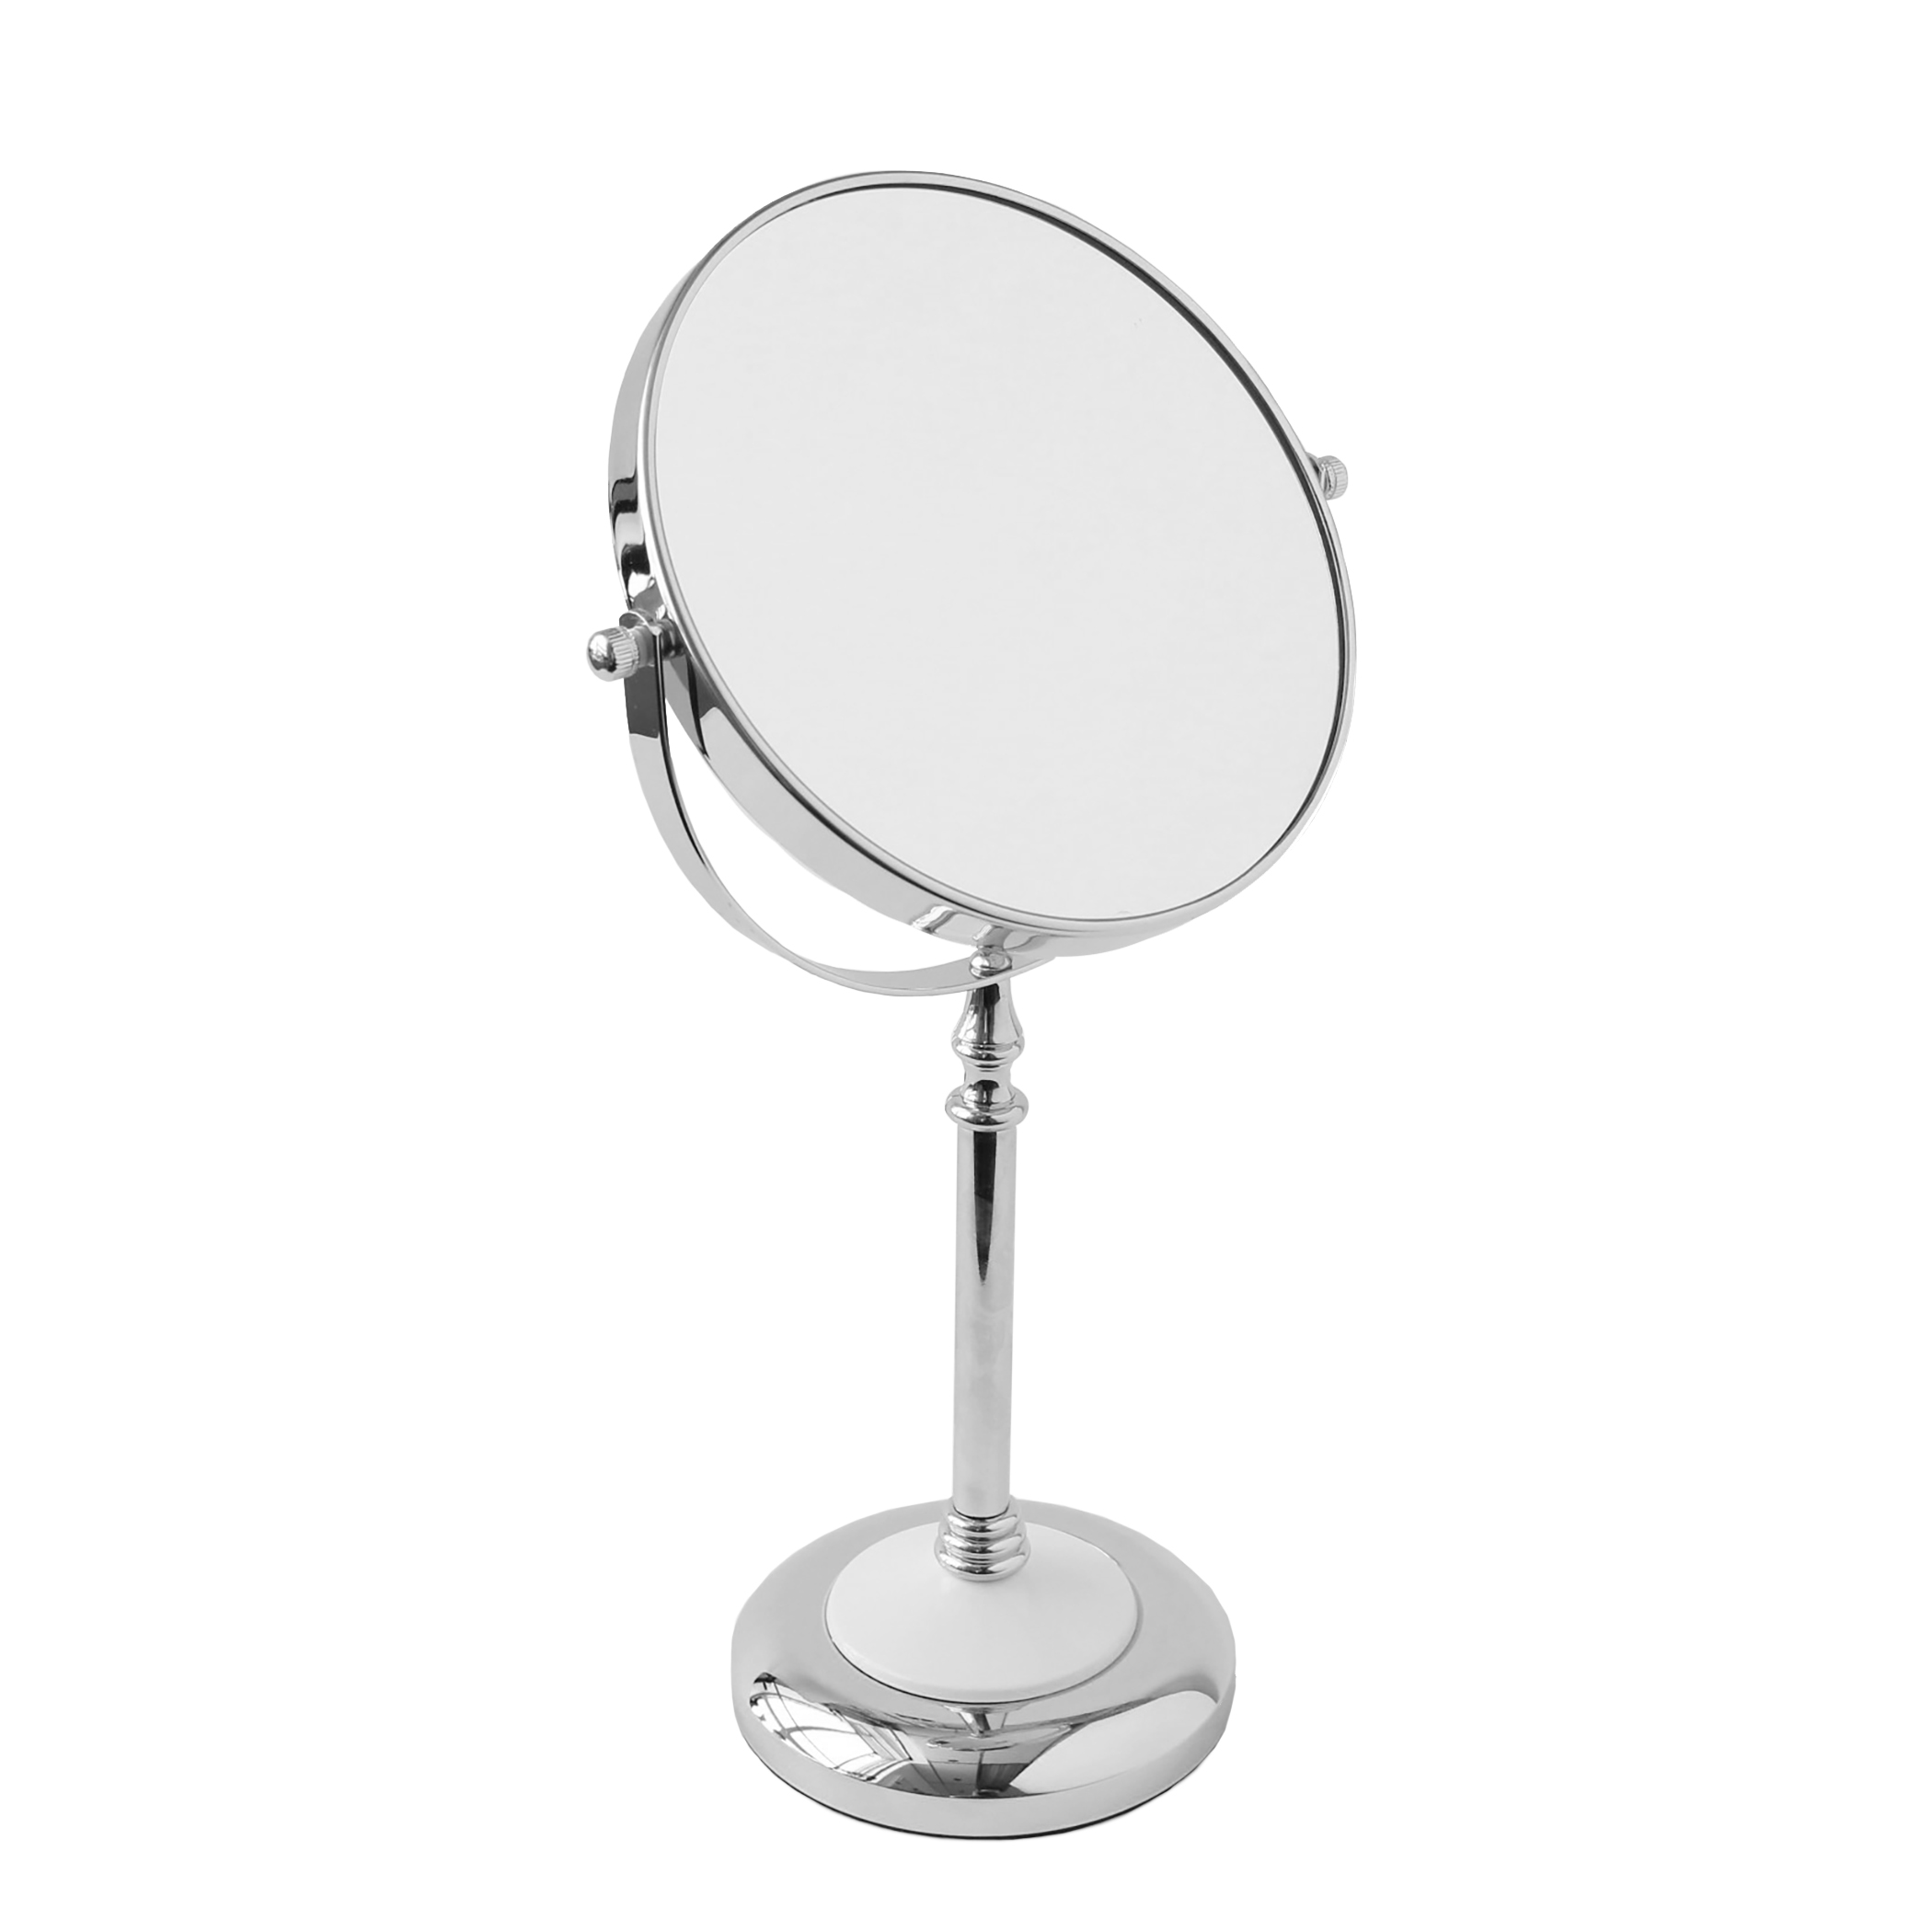 Mirrors - Explore our collection of must-have mirrors.